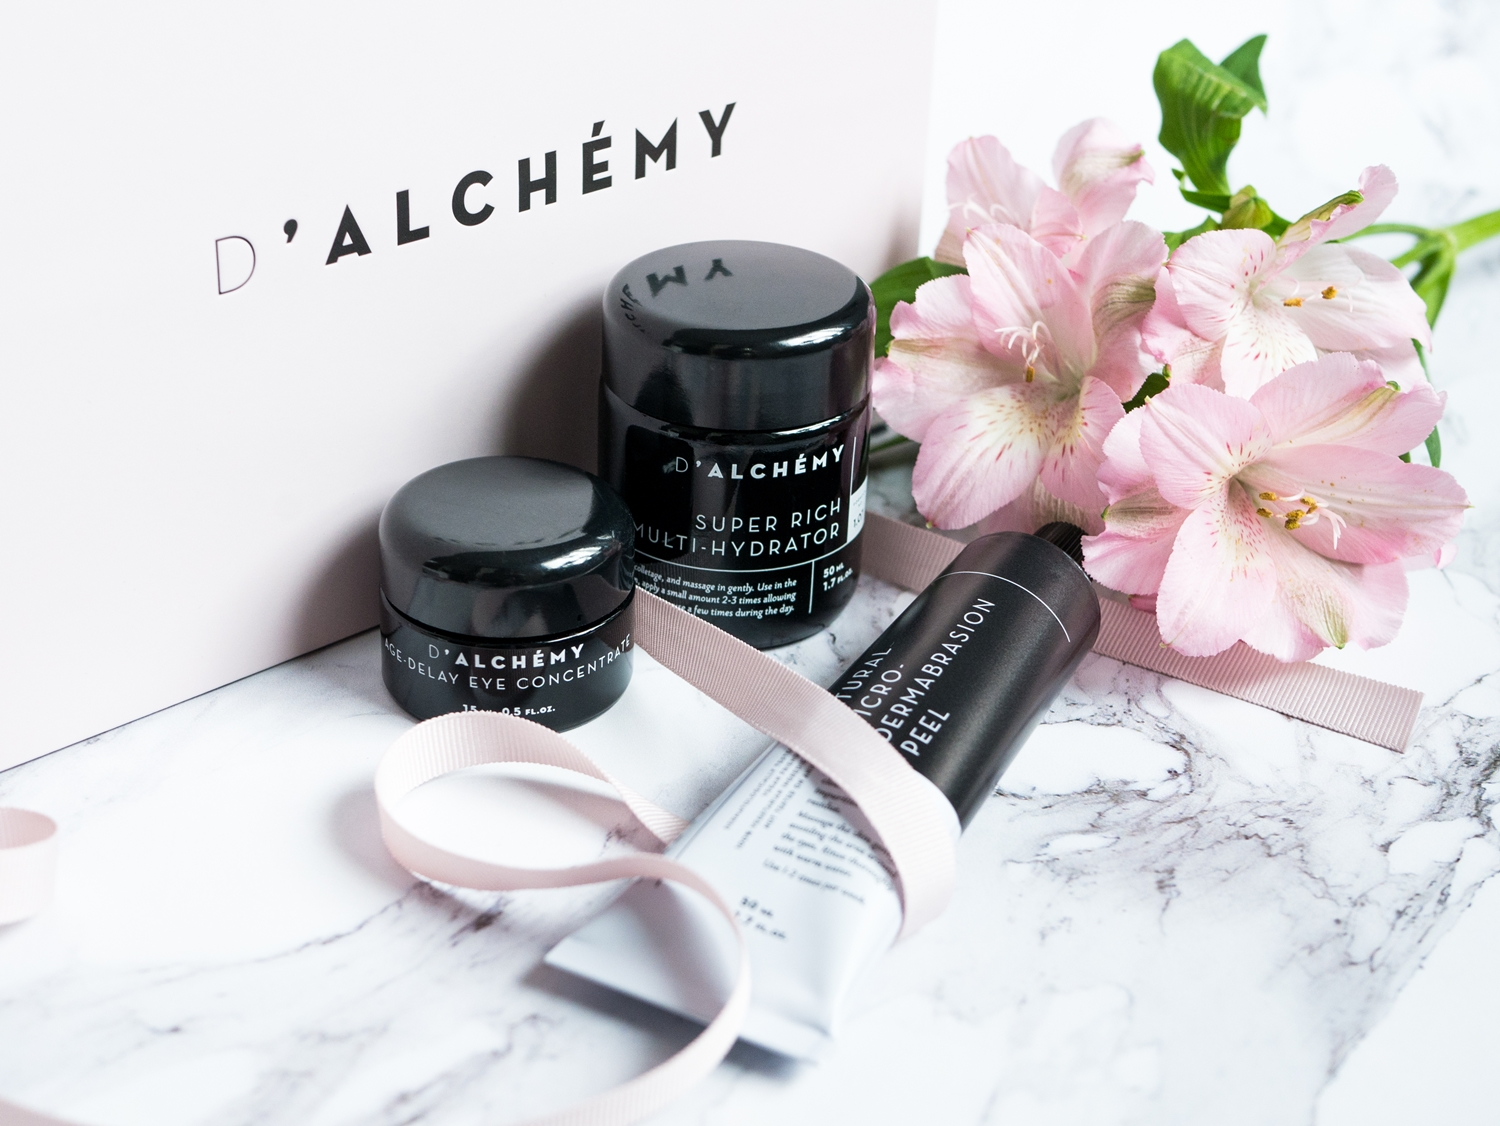 D'Alchemy Age Delay Eye Concentrate Super Rich Multi Hydrator Natural Micro‑Dermabrasion Peel